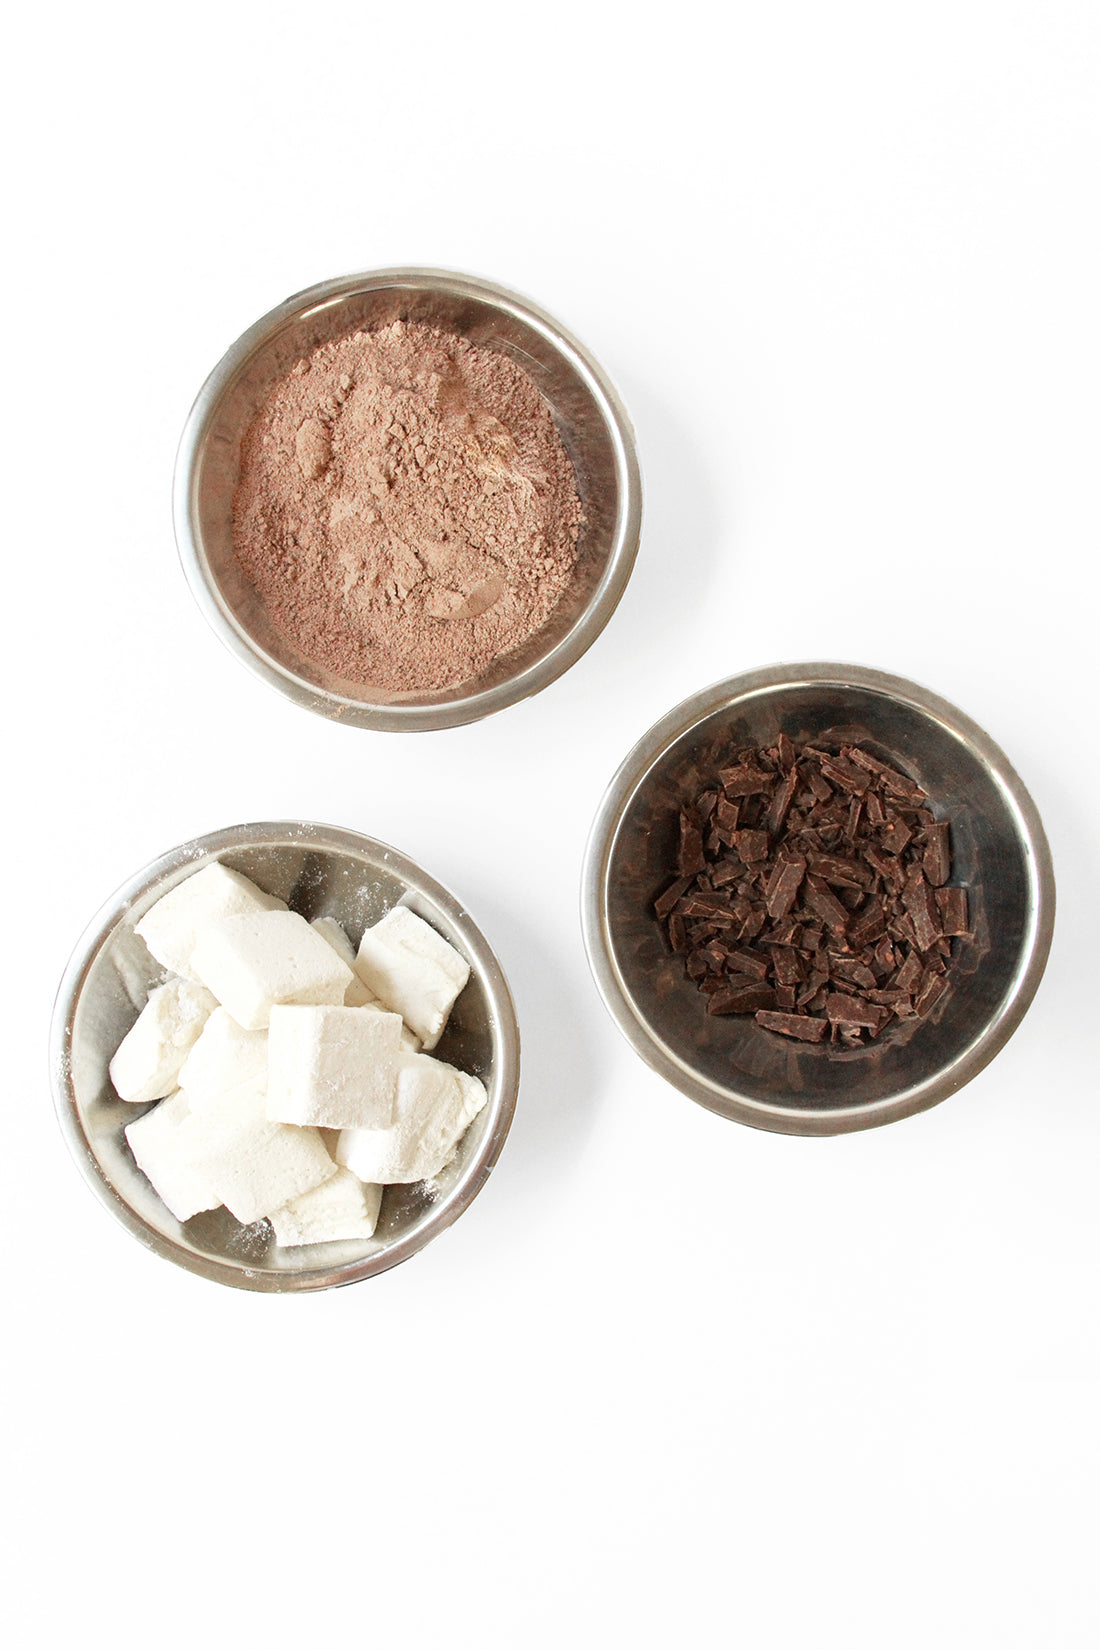 Image of three bowls of ingredients for Miss Jones Baking Co Hot Cocoa Mug Cake recipe